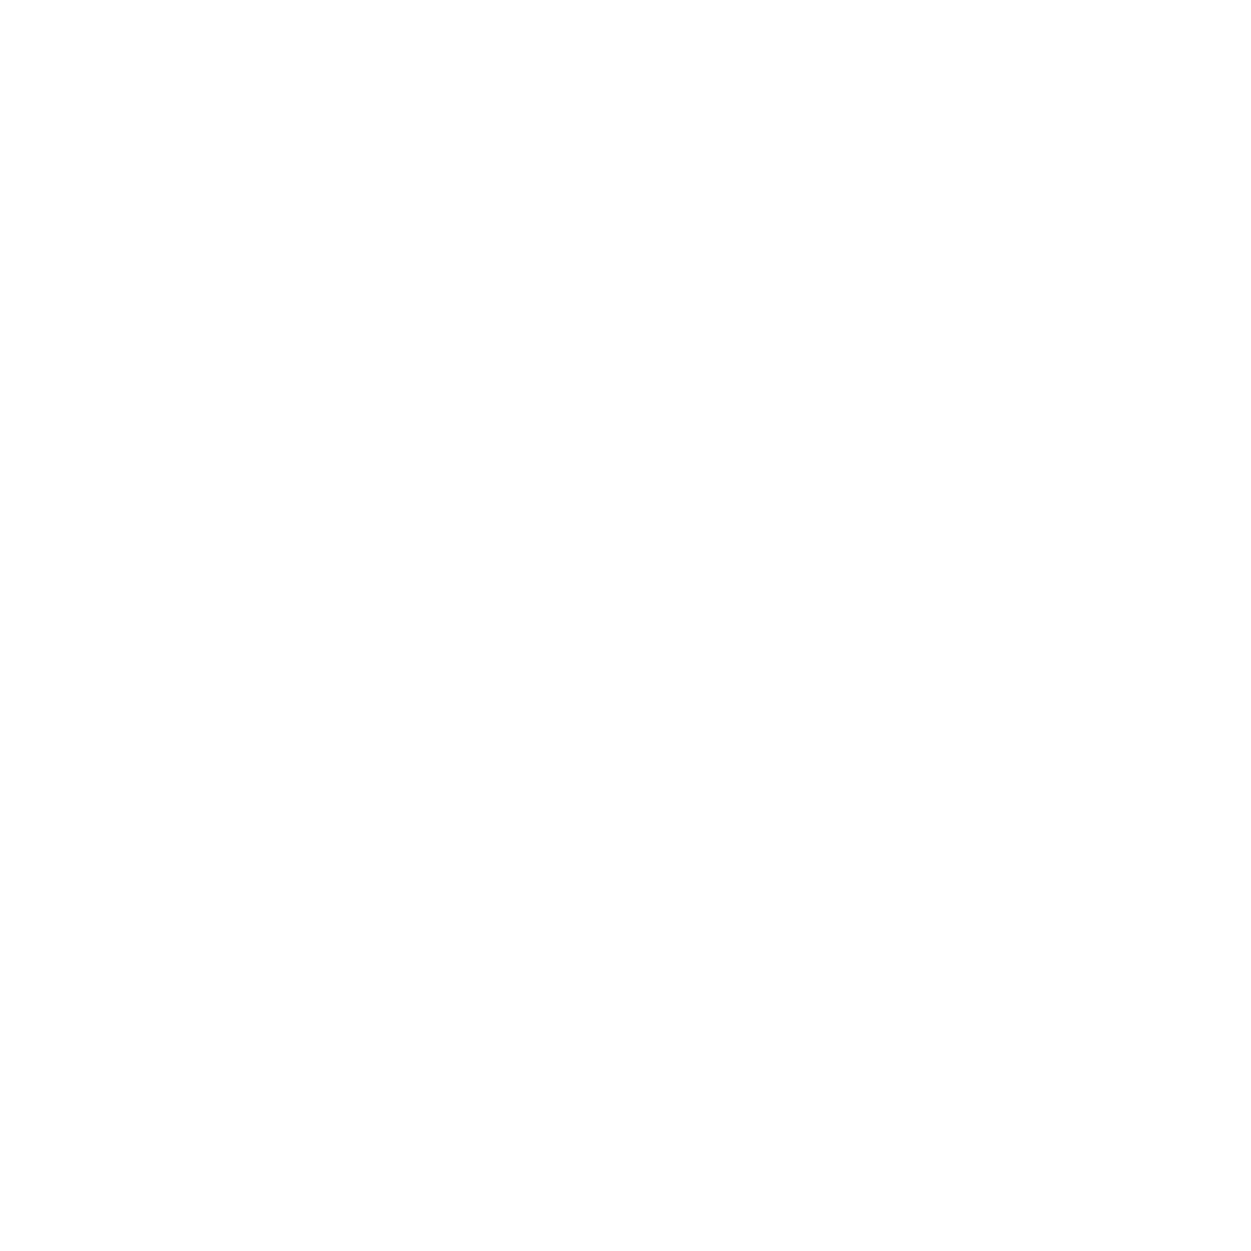 Alaska Center for the Blind and Visually Impaired